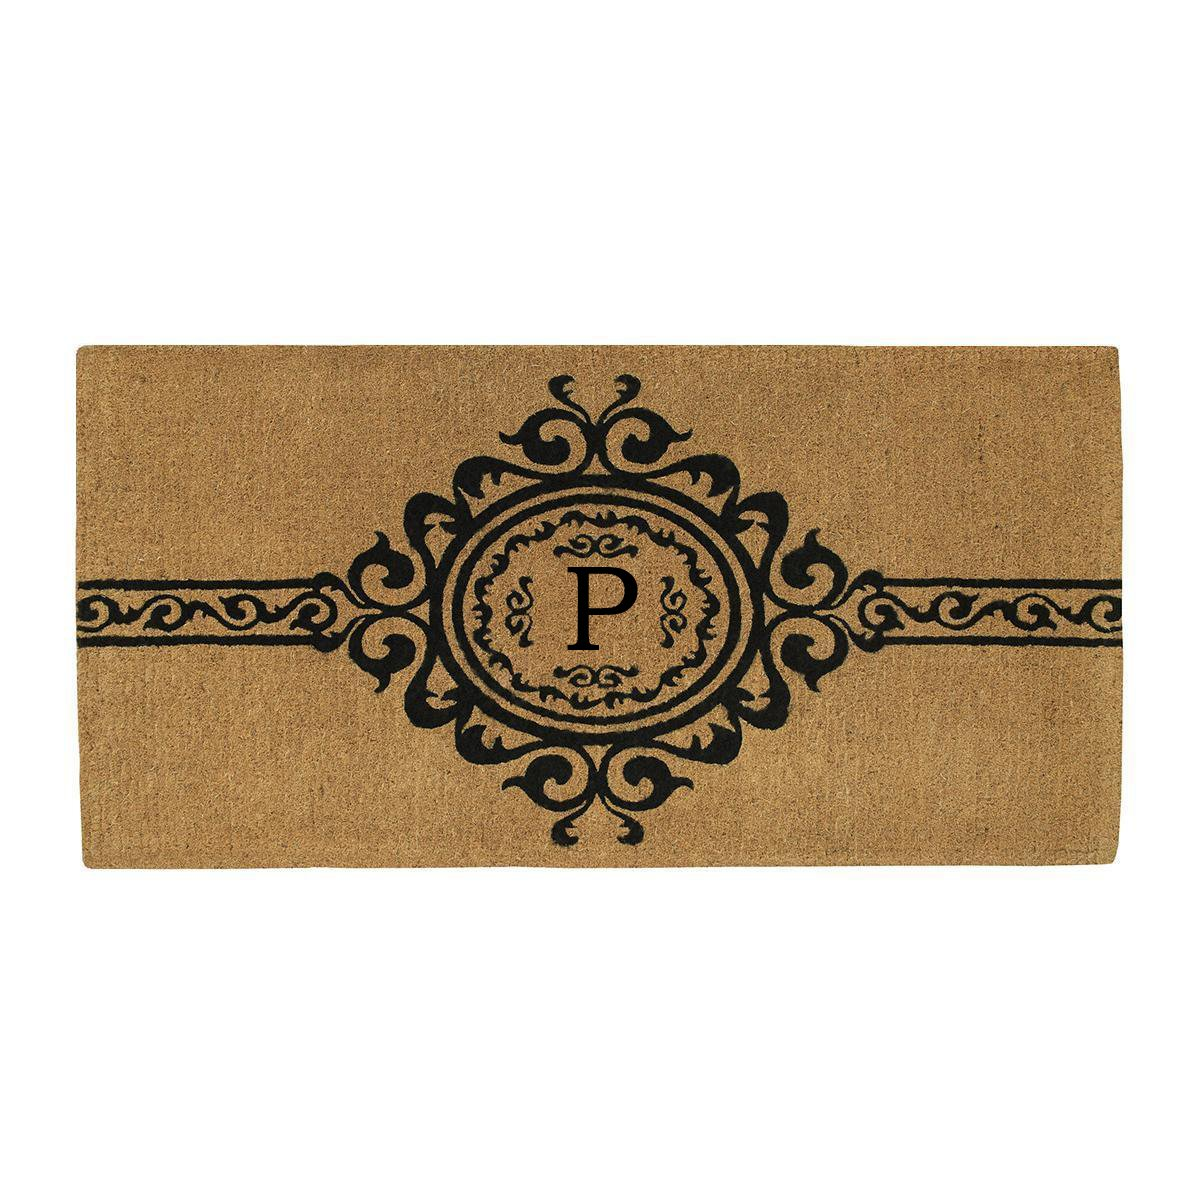 Home & More 180073672P Garbo Extra-thick Doormat, 36'' x 72'' x 1.50'', Monogrammed Letter P, Natural/Black by Home & More